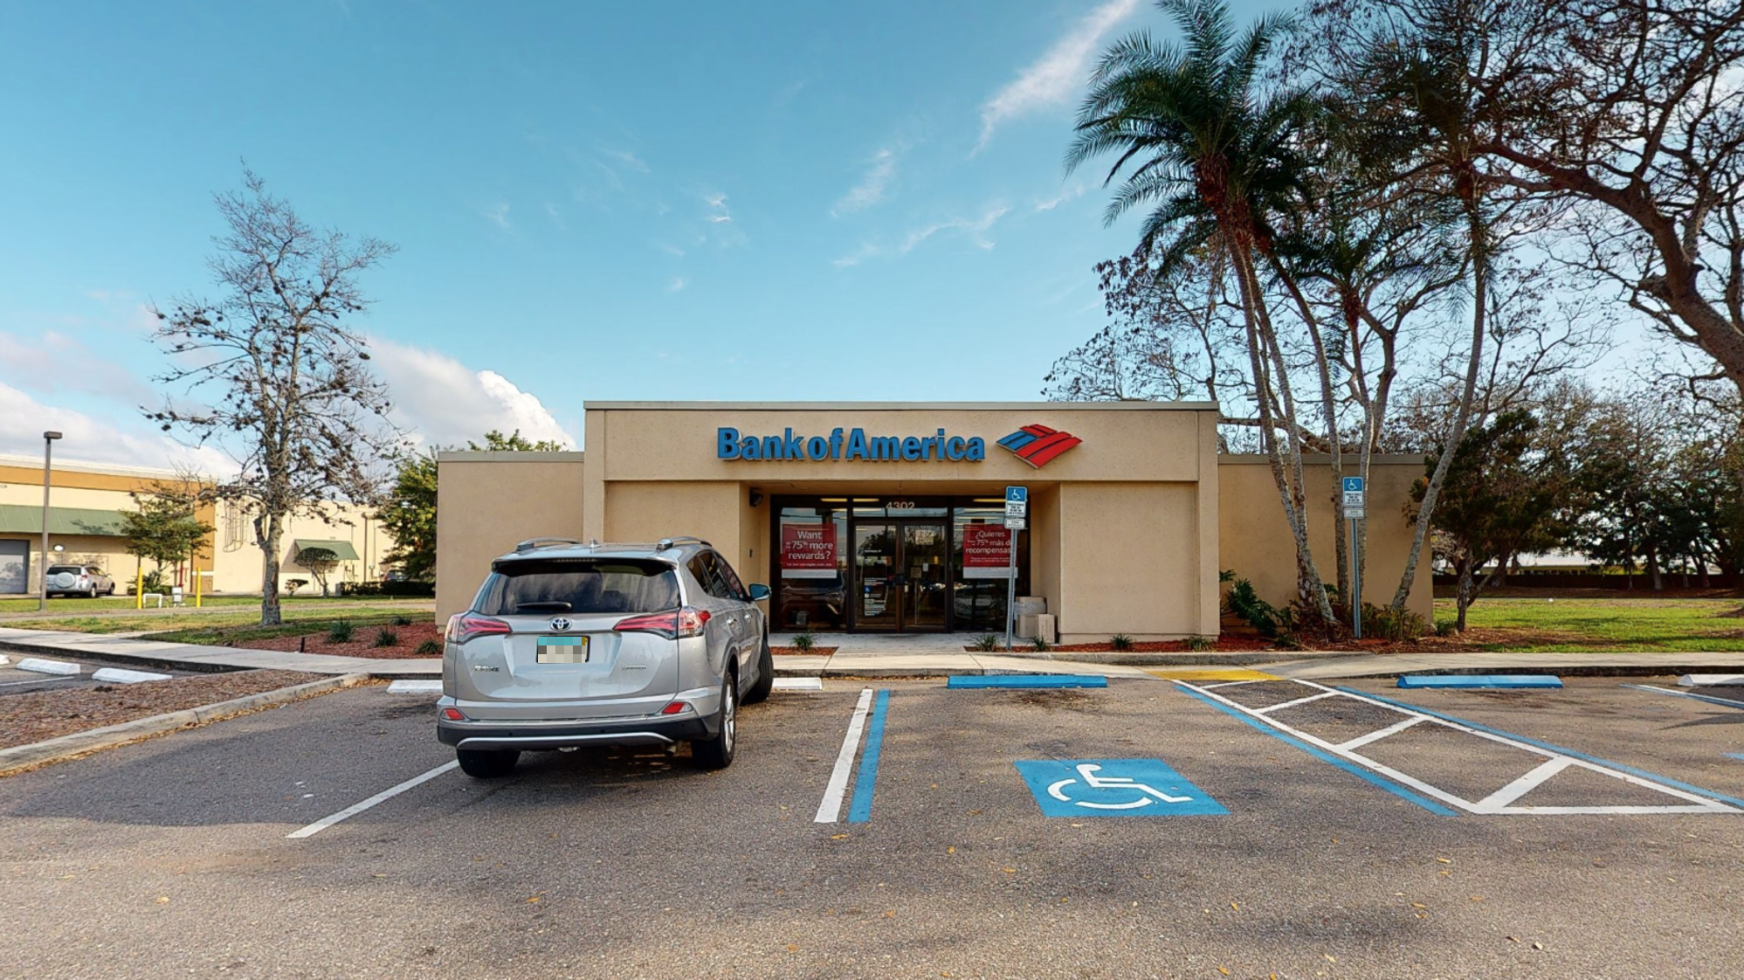 Bank of America financial center with drive-thru ATM and teller   4302 State Road 64 E, Bradenton, FL 34208